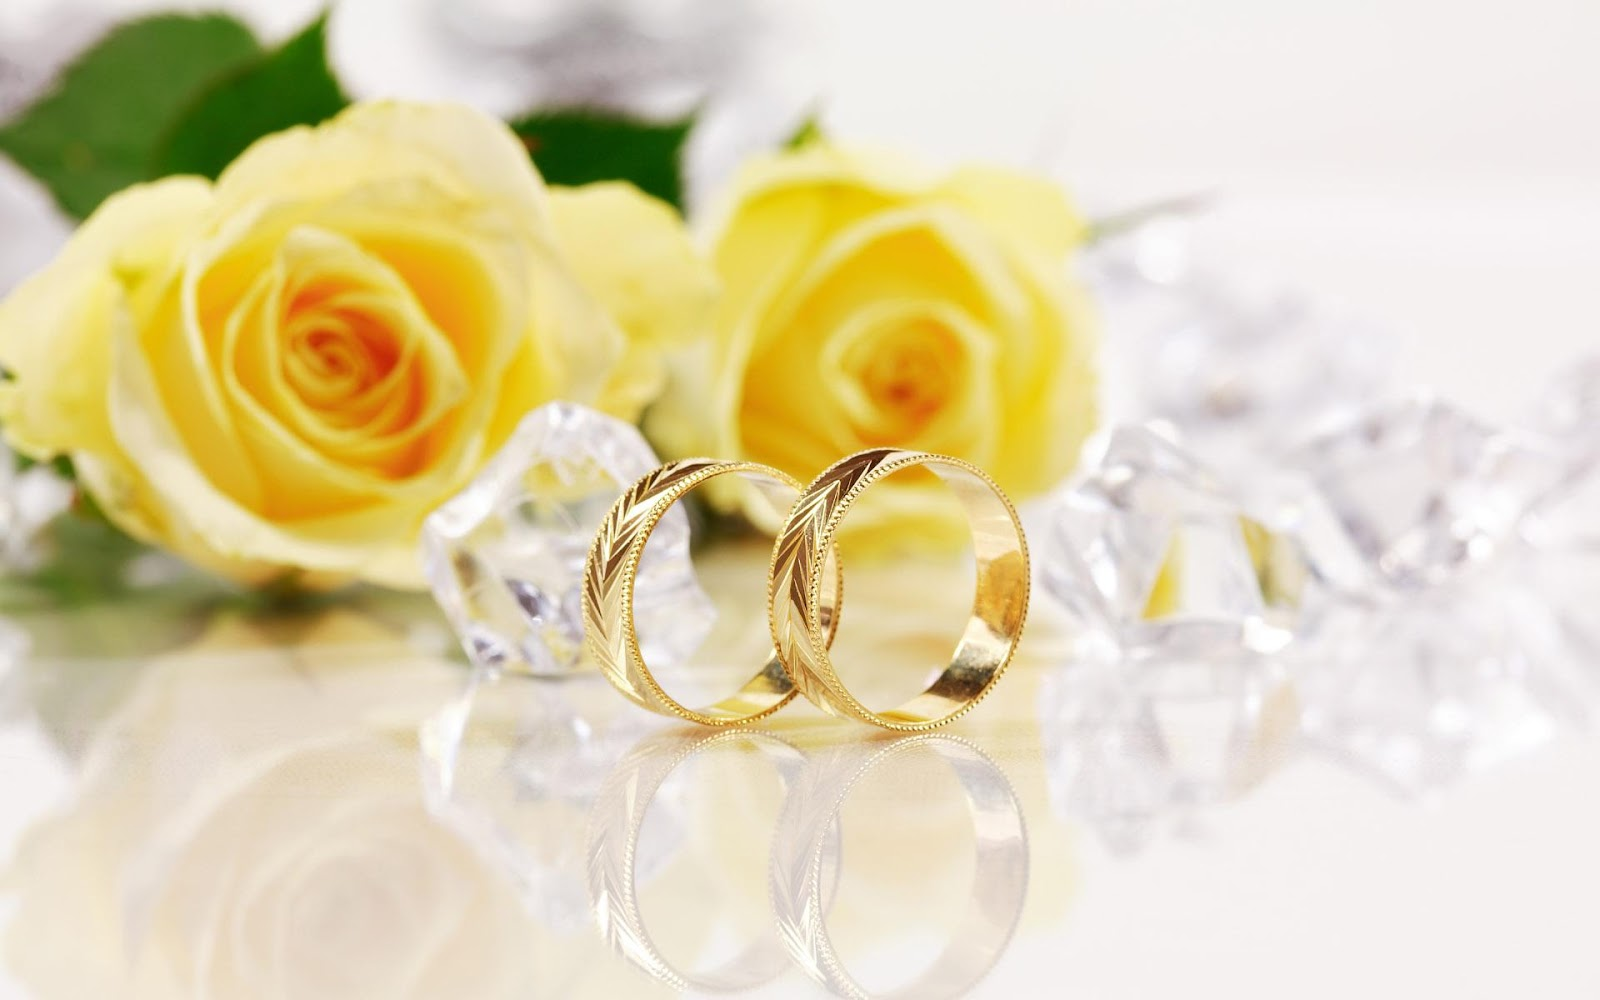 free wedding rings wallpaper